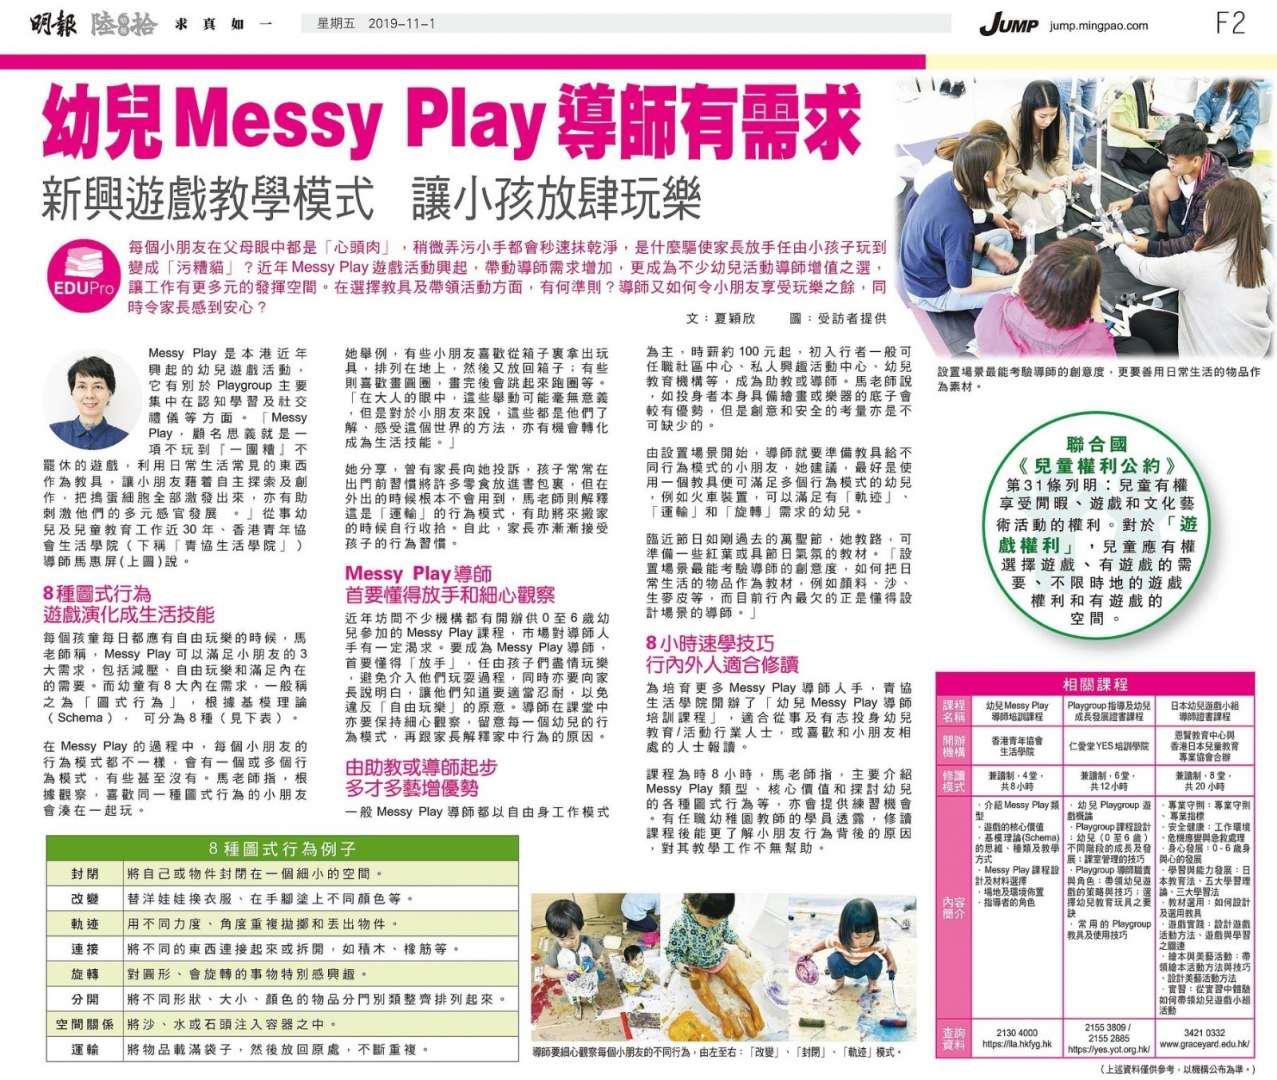 20191101_明報Jump_Messy Play